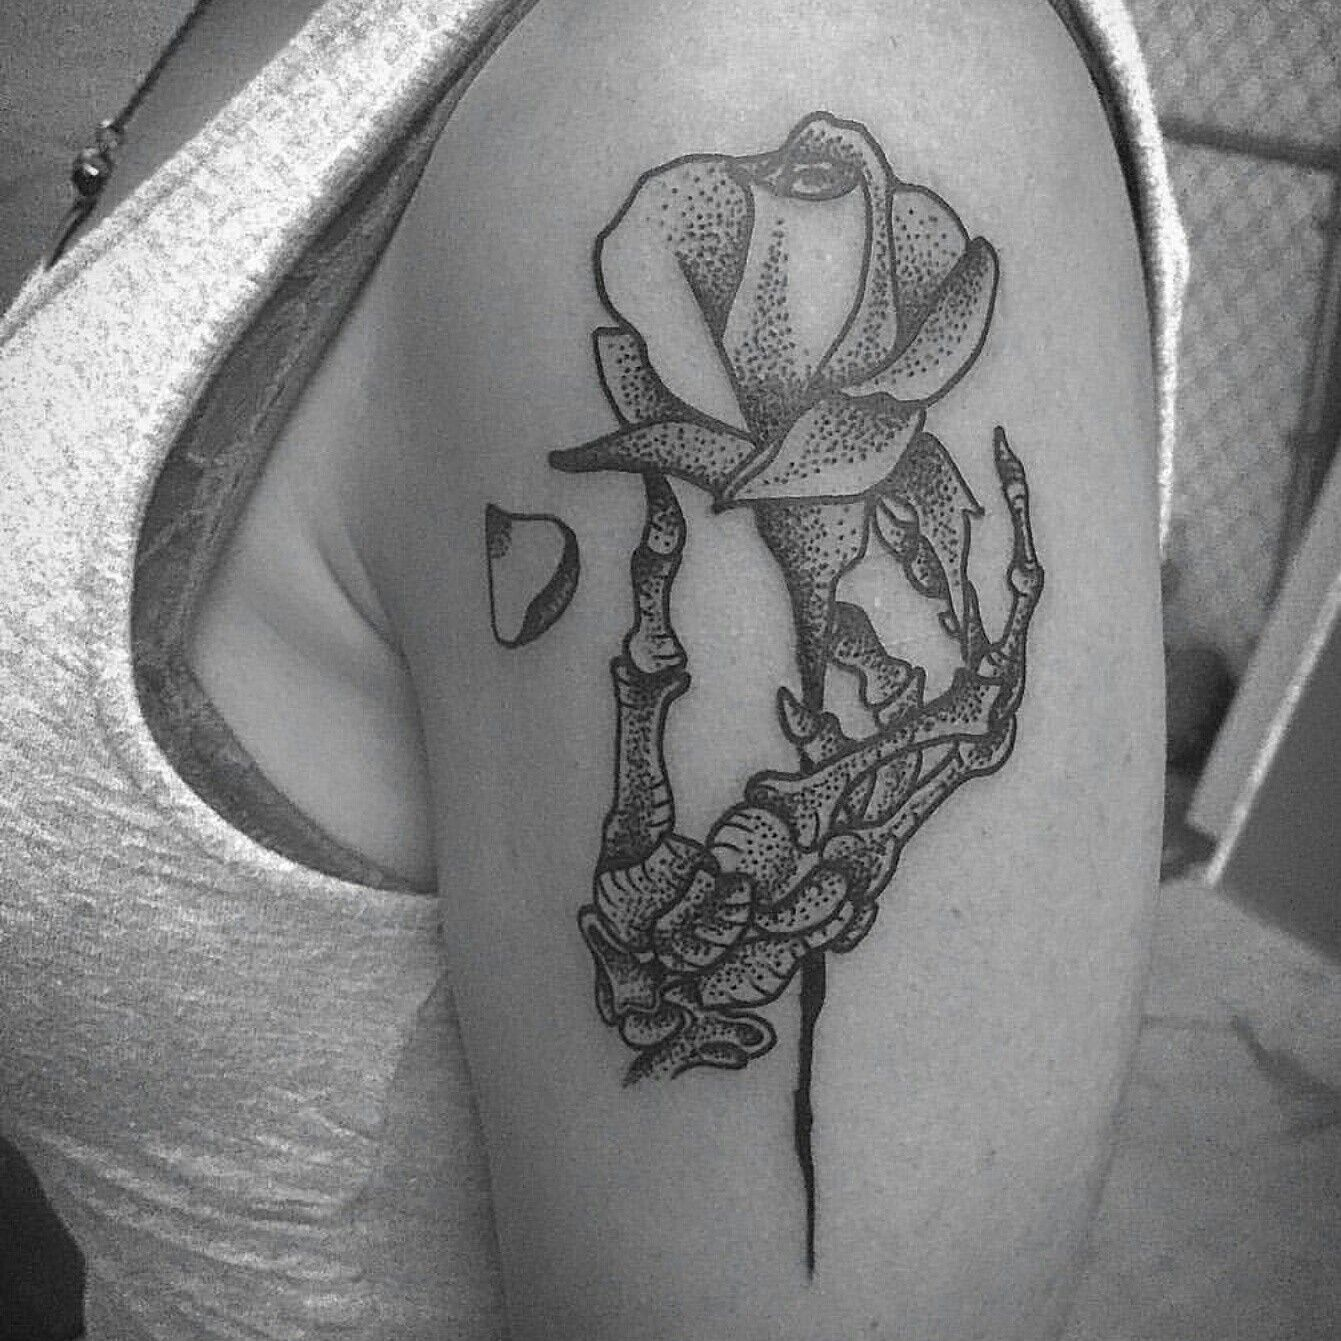 a887c6f52025b Skeleton hand holding a rose tattoo. First tattoo. | aesthetic ...